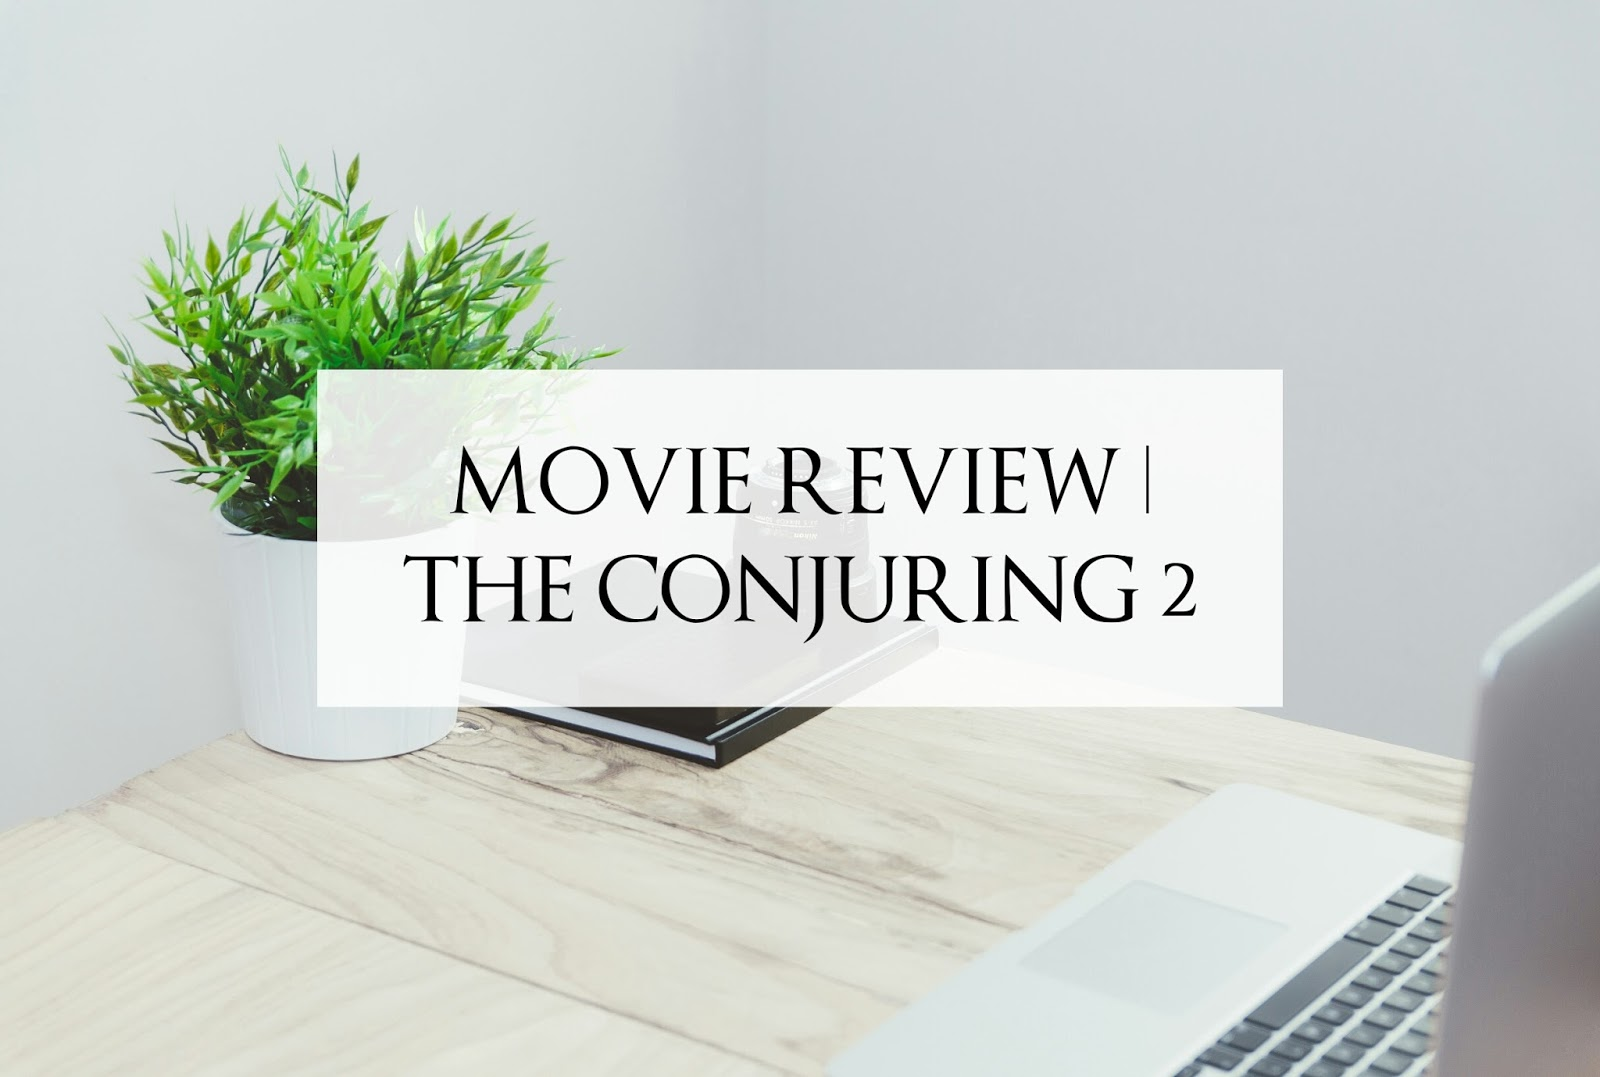 Movie Review | The Conjuring 2